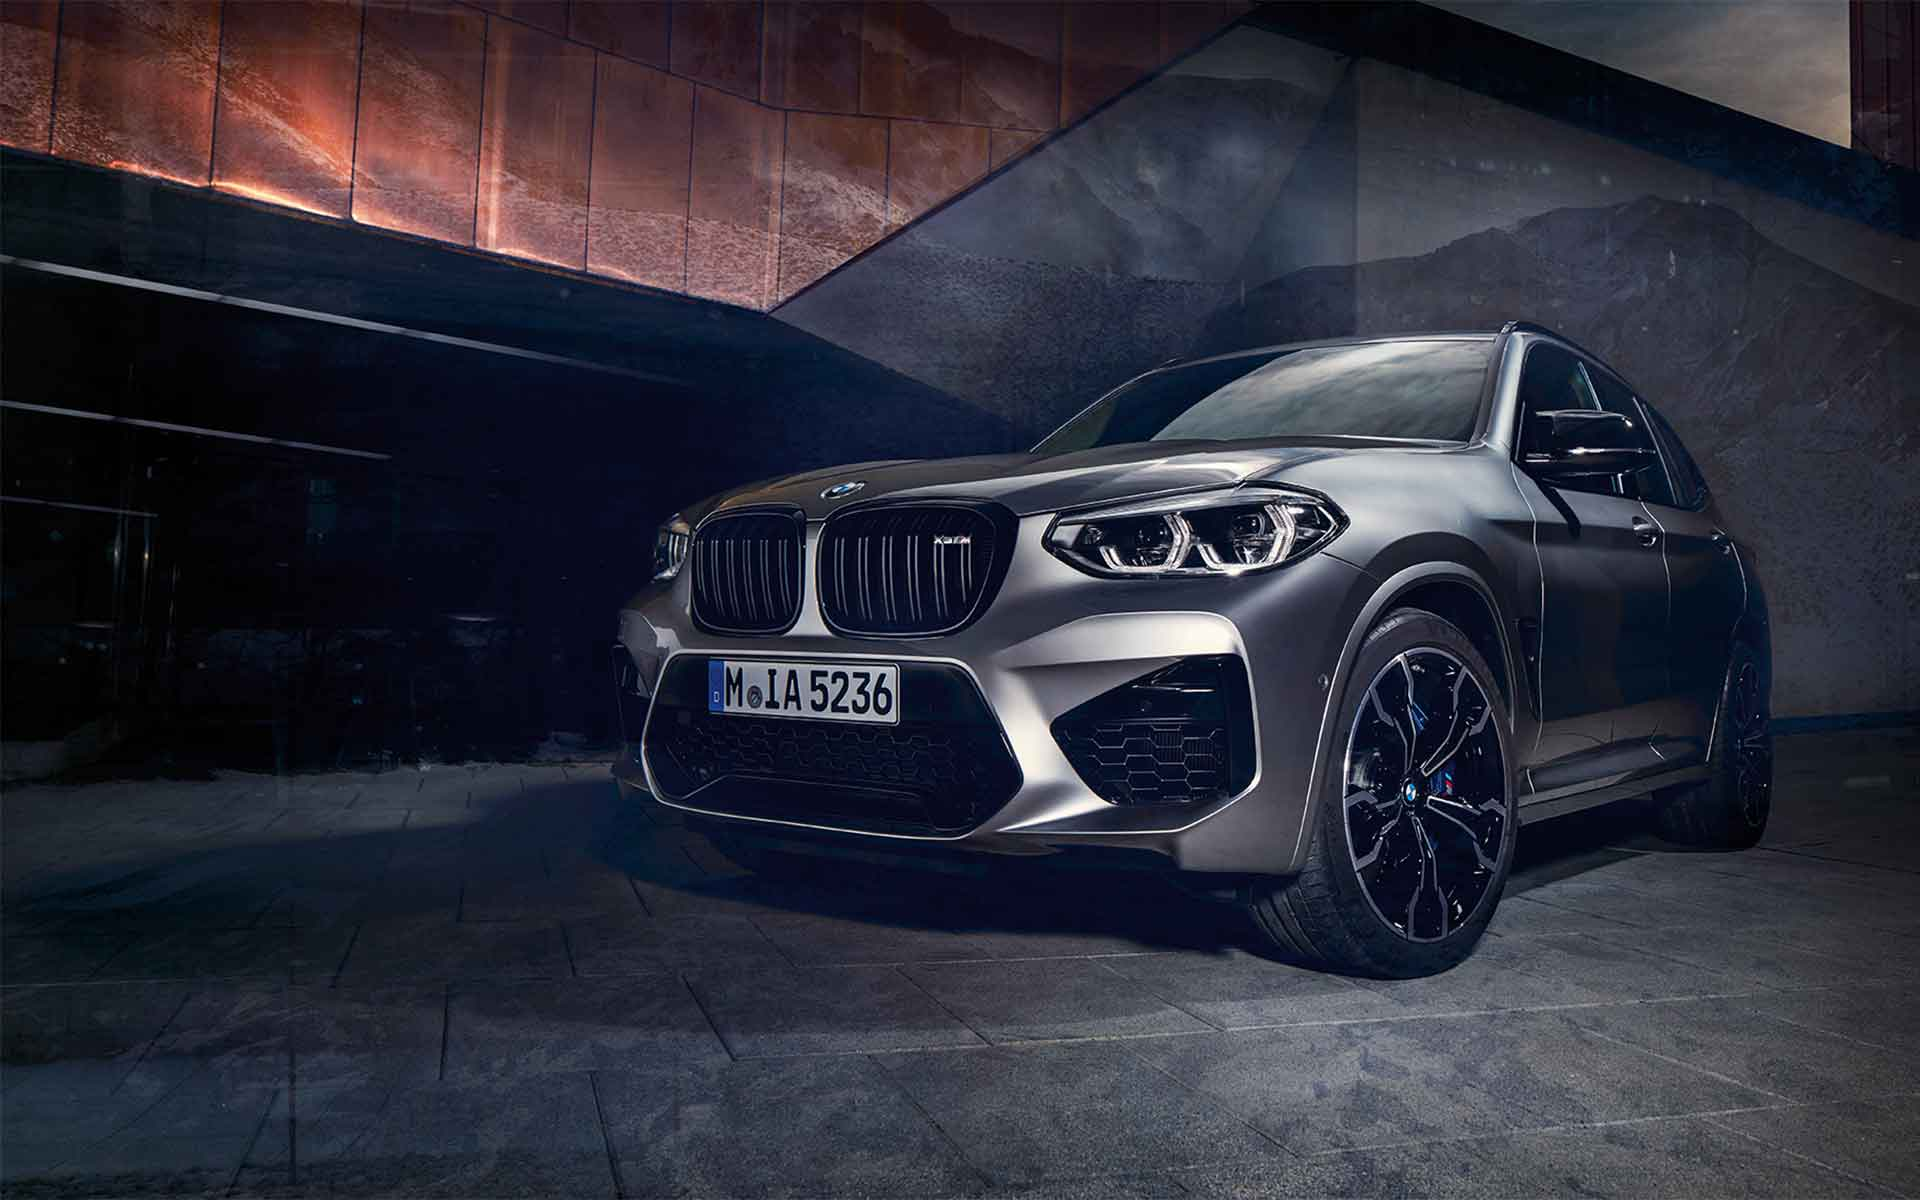 THE X3 M